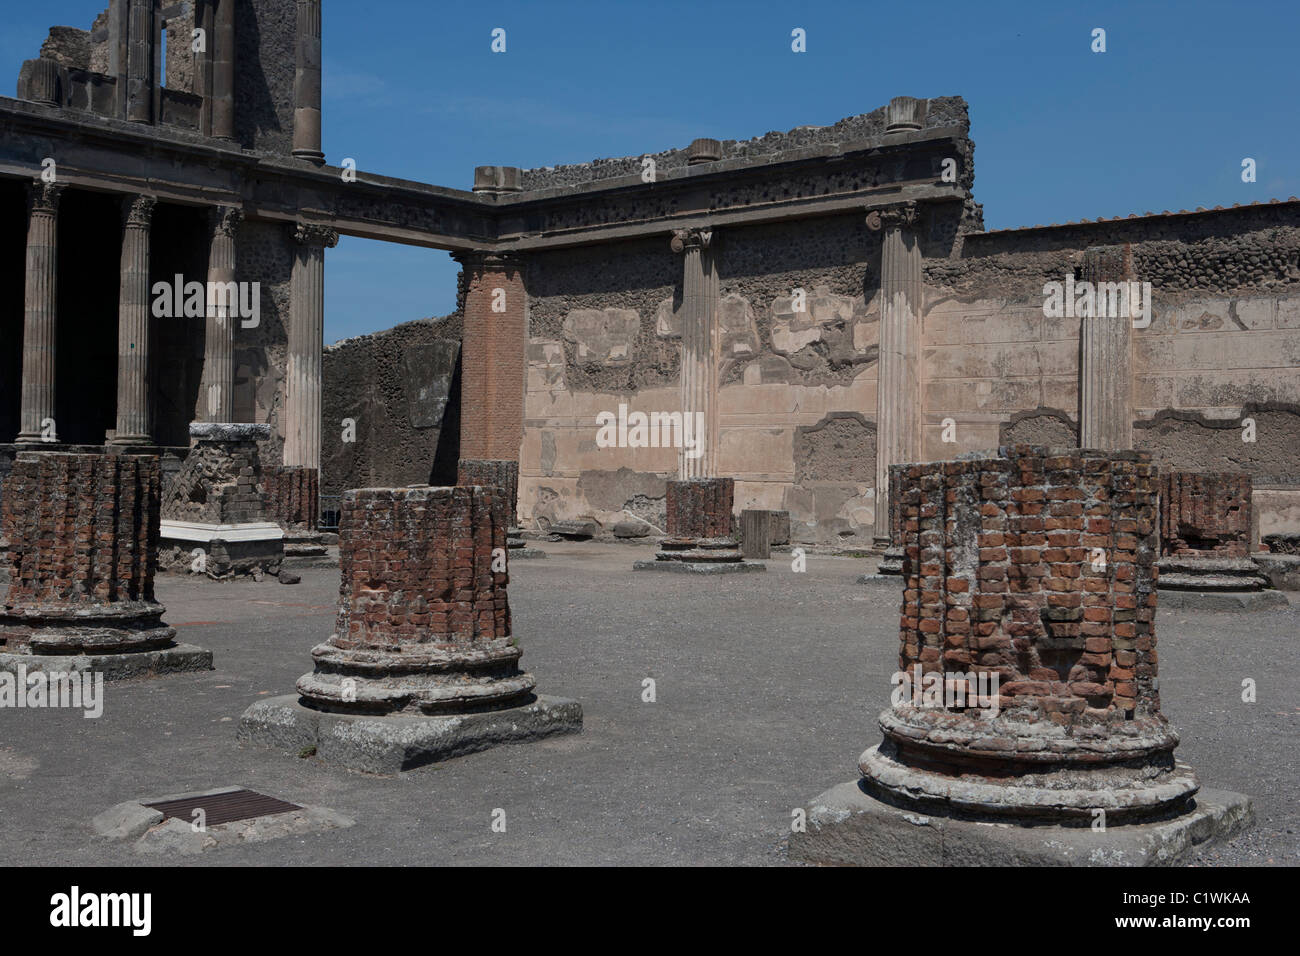 Grand, Roman era (AD 79), courtyard. Showing Ionic and Corinthian columns (see description for indentifications). - Stock Image